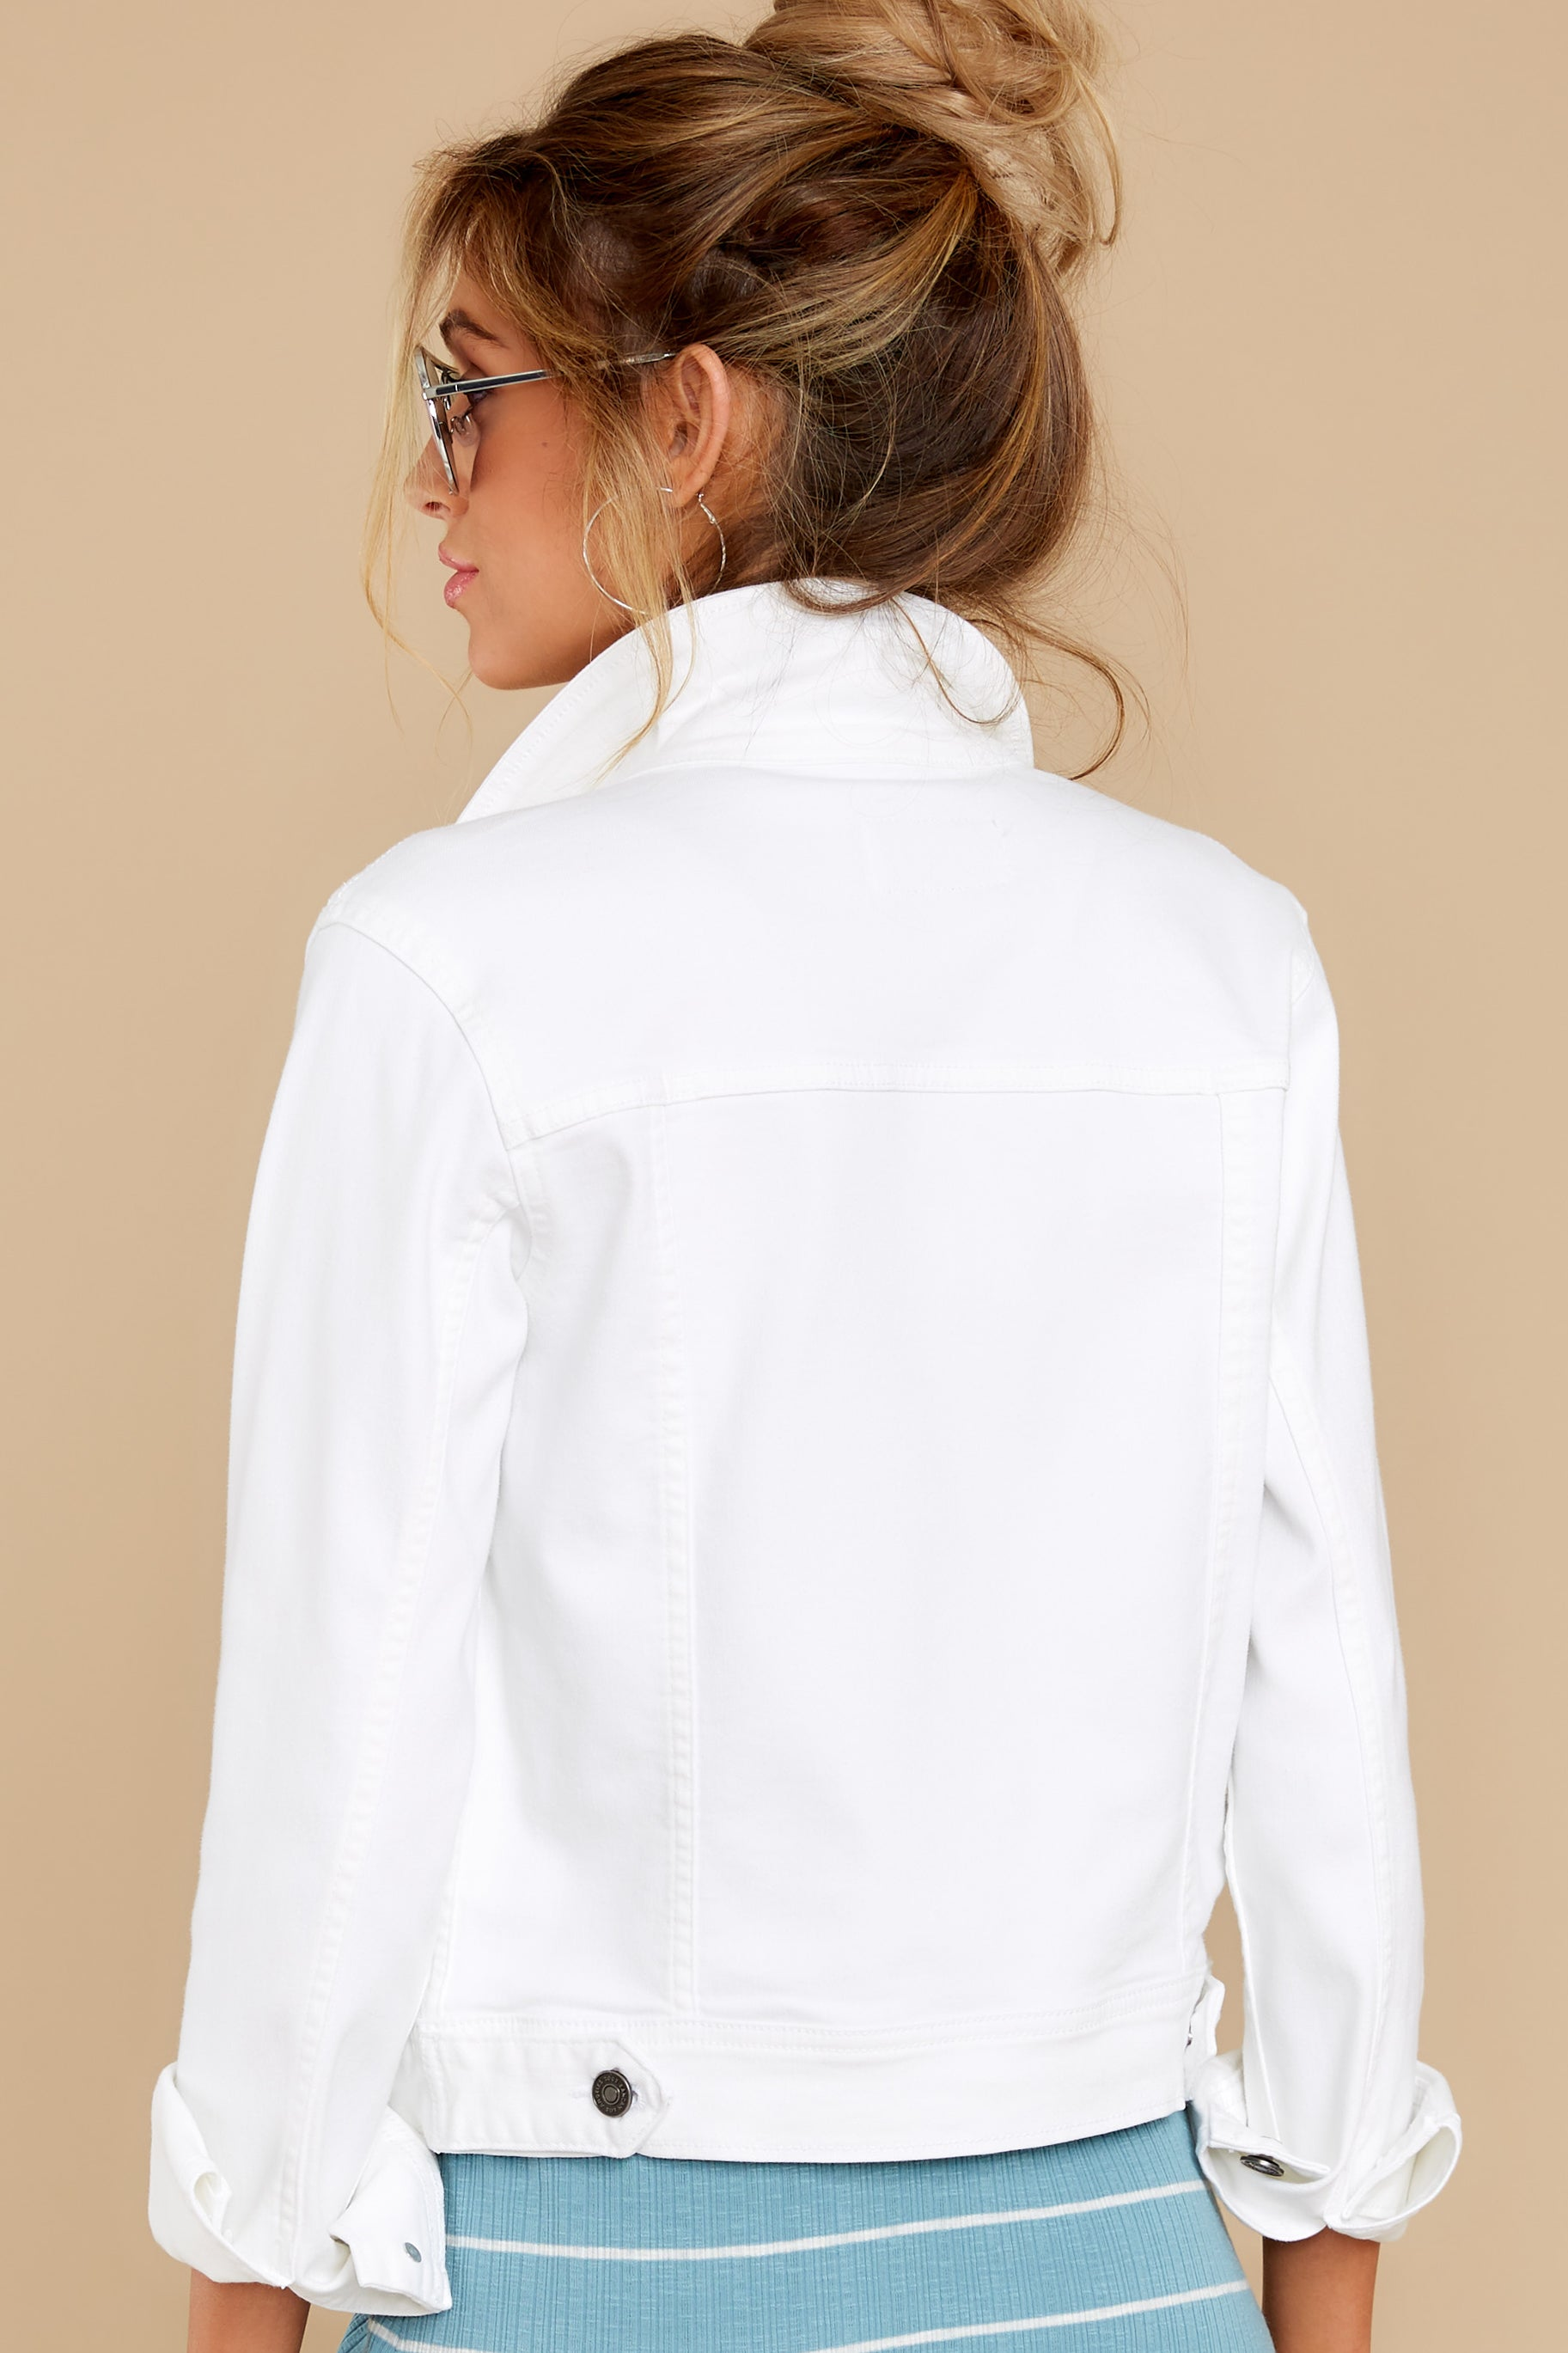 15 Framed By Love White Denim Jacket at reddress.com